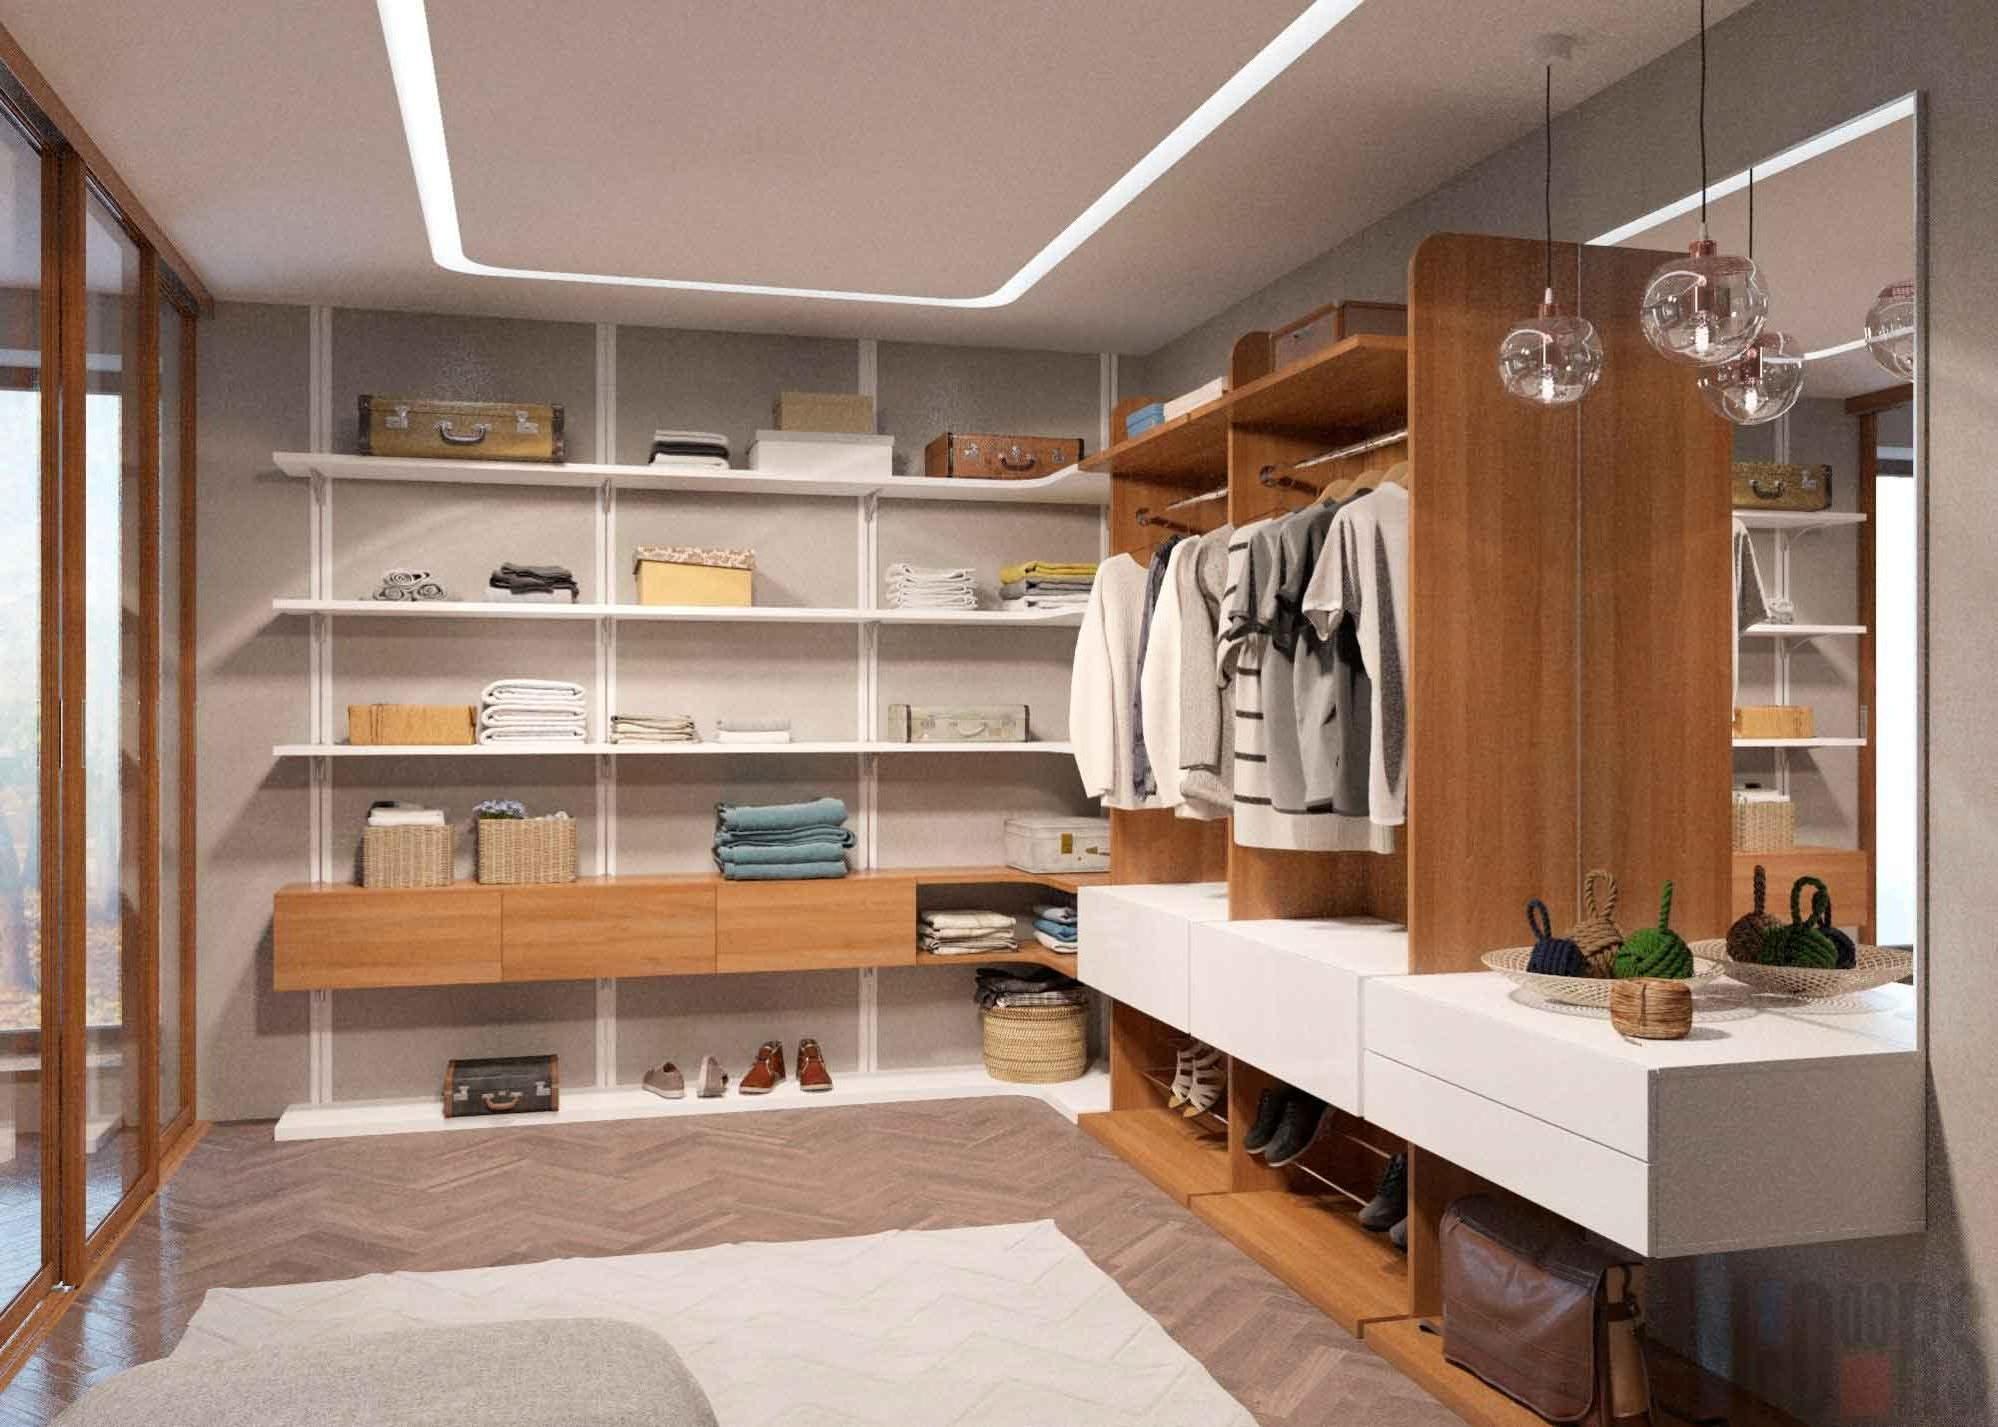 Interior dressing room with wooden shelves